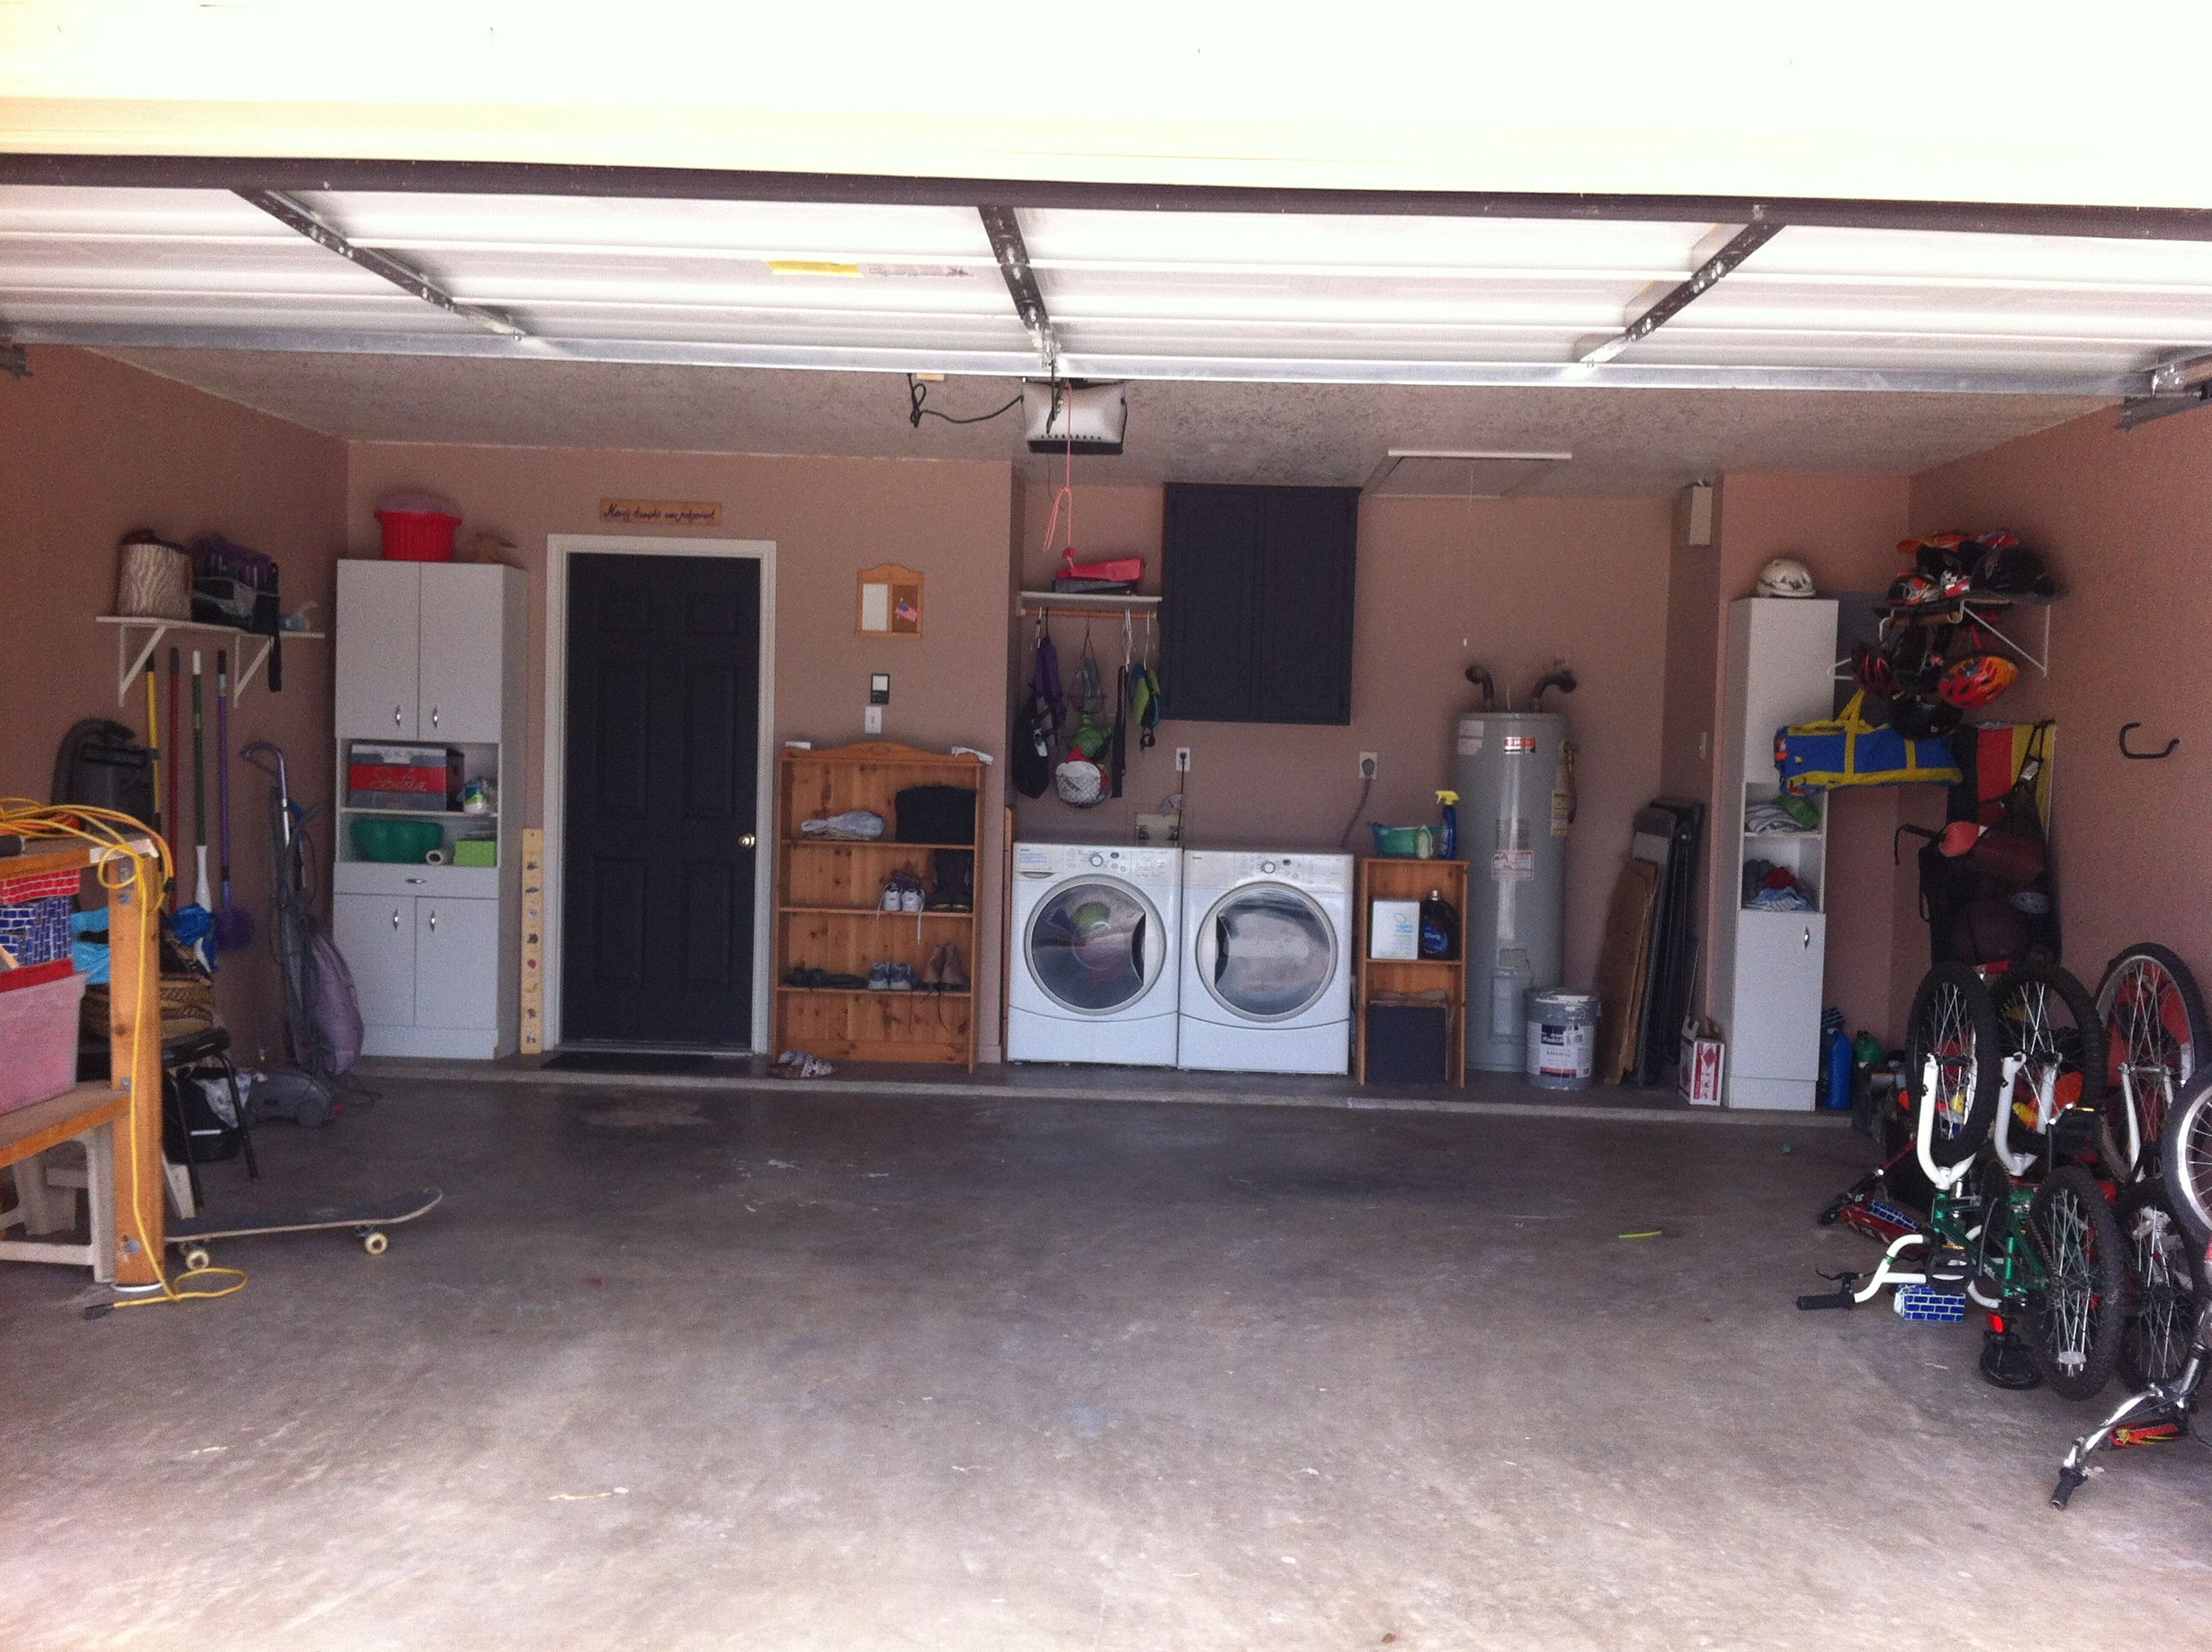 Garage Remodeled Painted Walls Chalkboard Paint On Door And Laundry Cabinet Old Snowboard